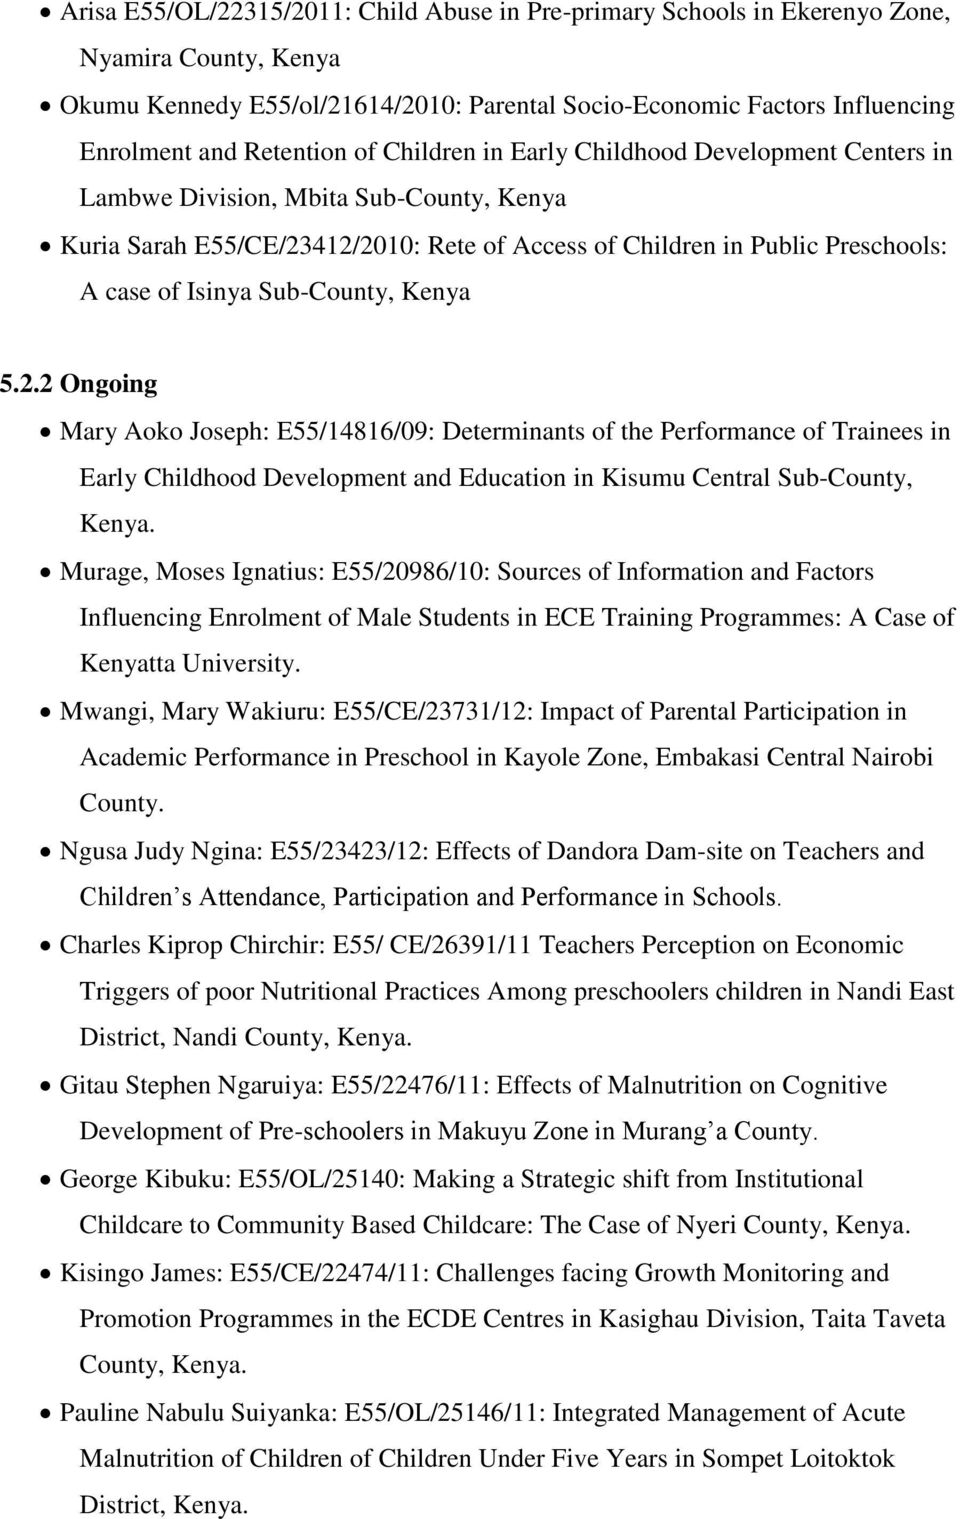 Isinya Sub-County, Kenya 5.2.2 Ongoing Mary Aoko Joseph: E55/14816/09: Determinants of the Performance of Trainees in Early Childhood Development and Education in Kisumu Central Sub-County, Kenya.